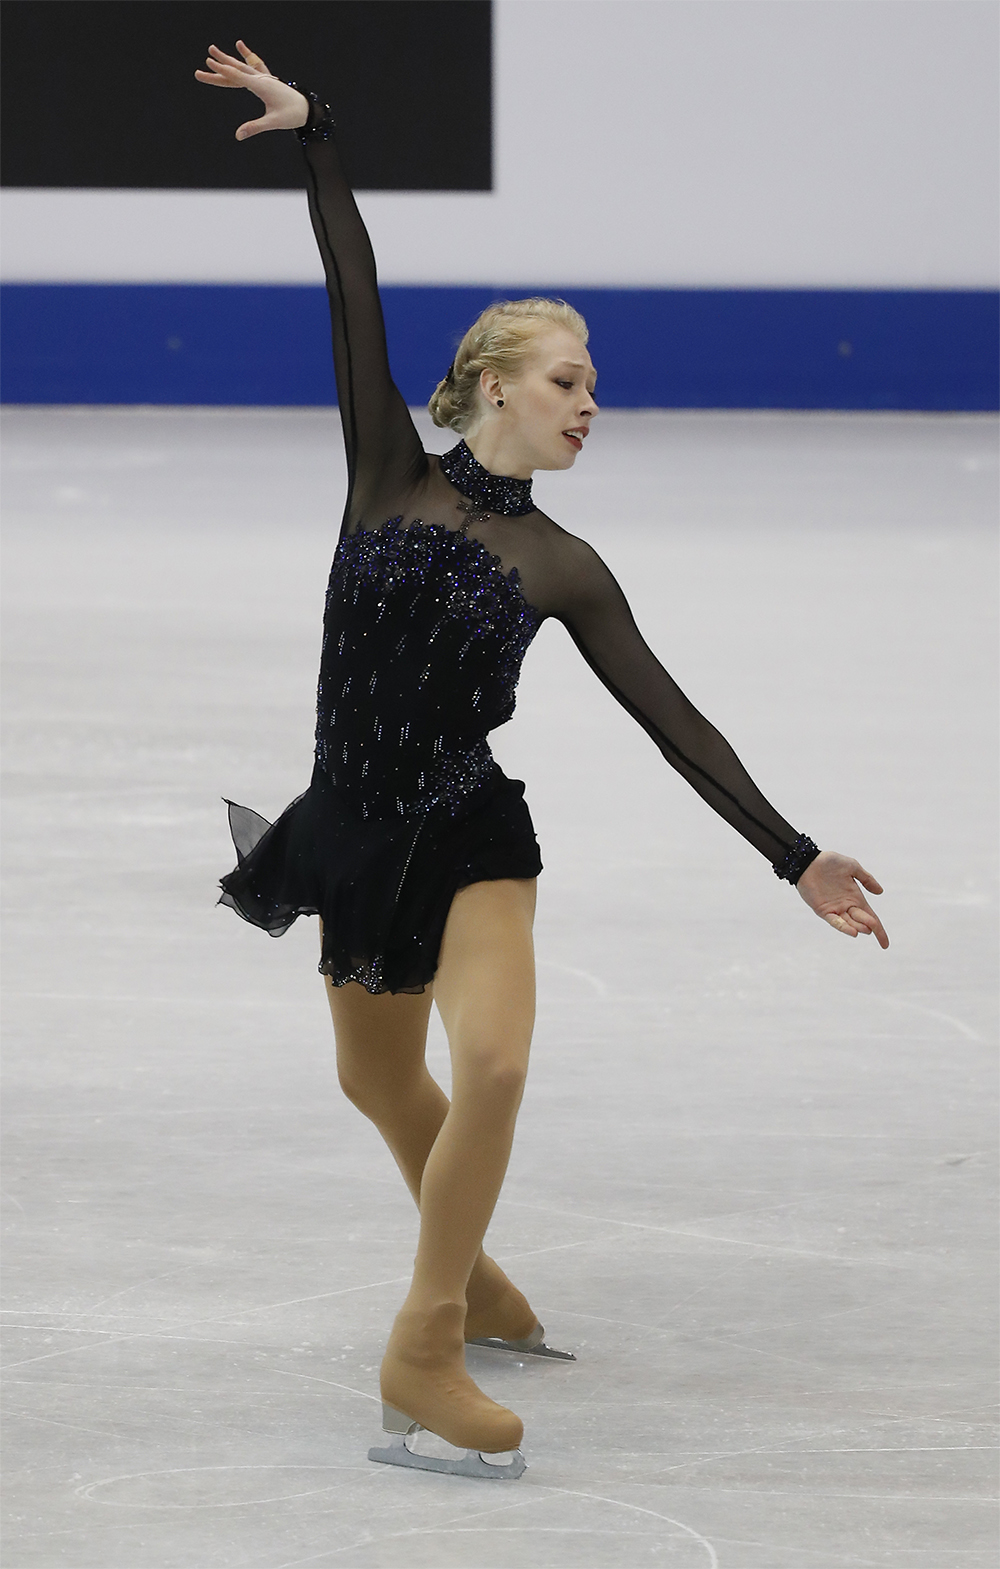 Bradie Tennell performs an ina bauer in competition.